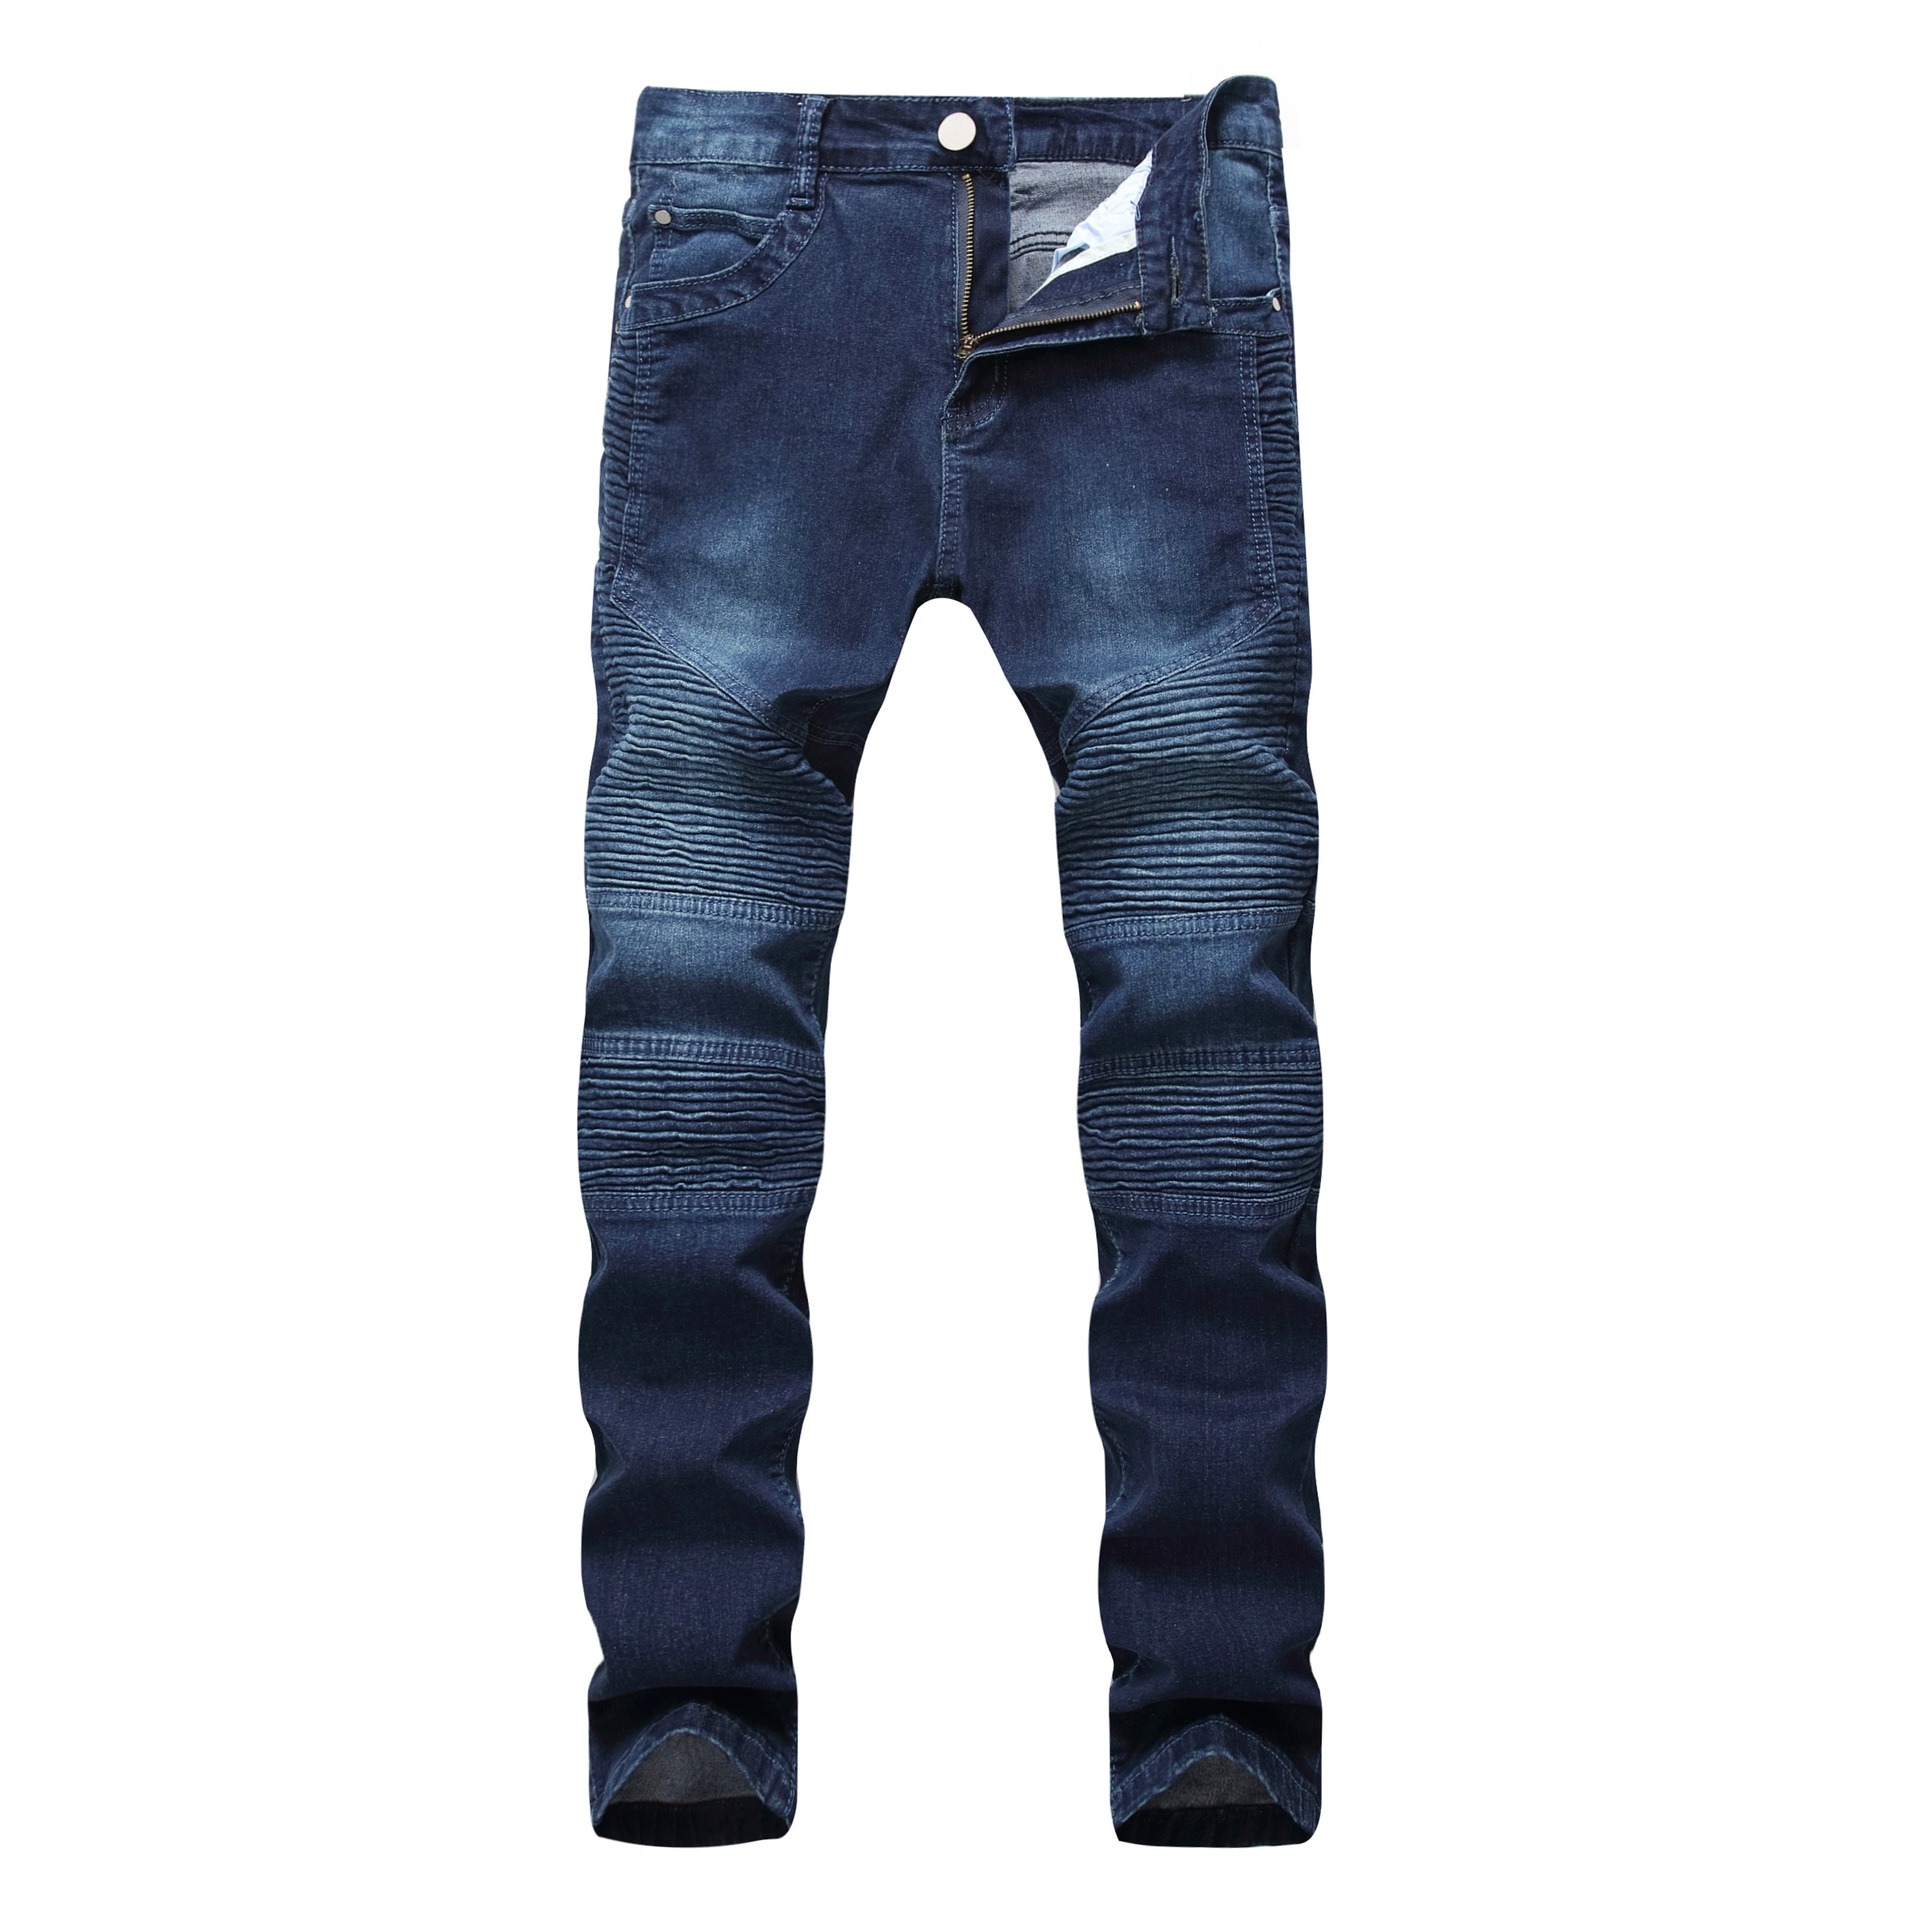 Hi-Street Mens Ripped Rider Biker Jeans Motorcycle Slim Fit Washed Black Grey Blue Denim Pants Joggers Skinny Men skinny biker jeans men hi street ripped rider denim jeans motorcycle runway slim fit washed moto denim pants joggers jw104